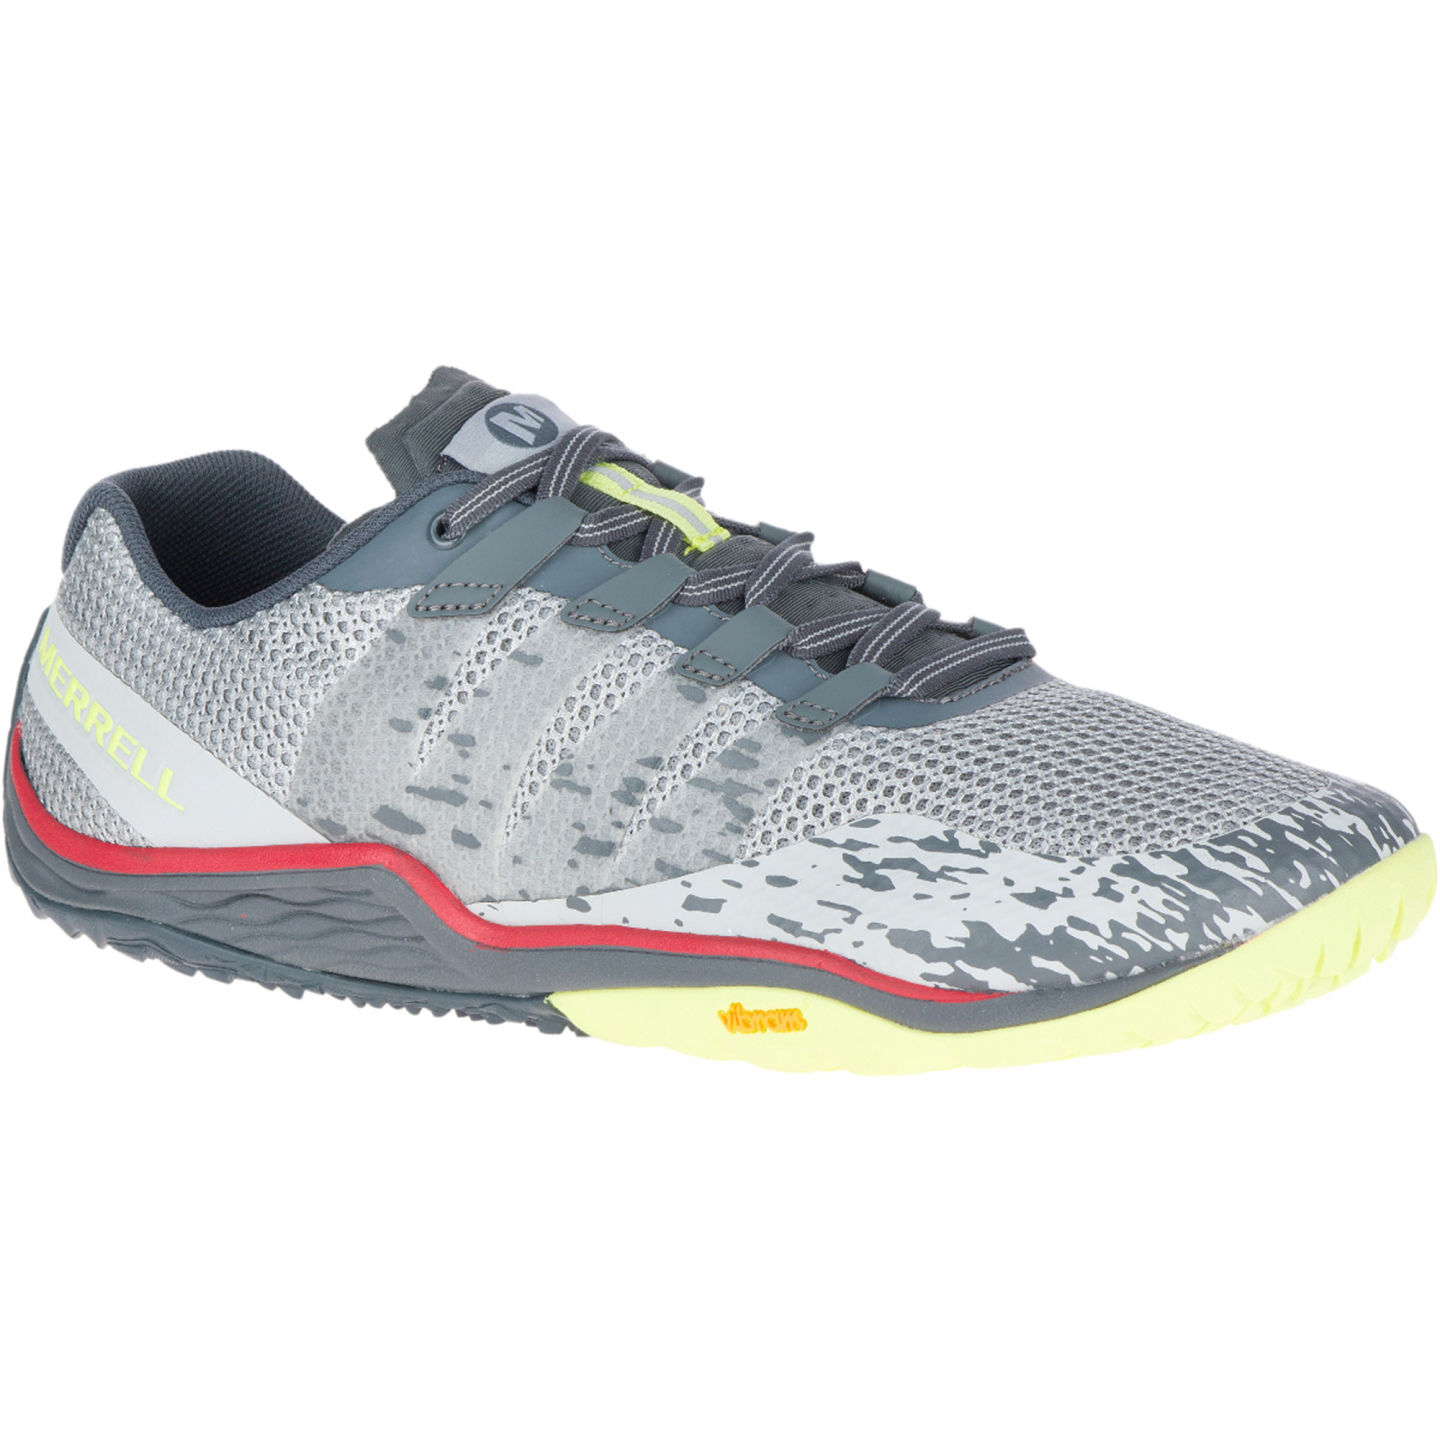 Merrell Trail Glove shoes give trail